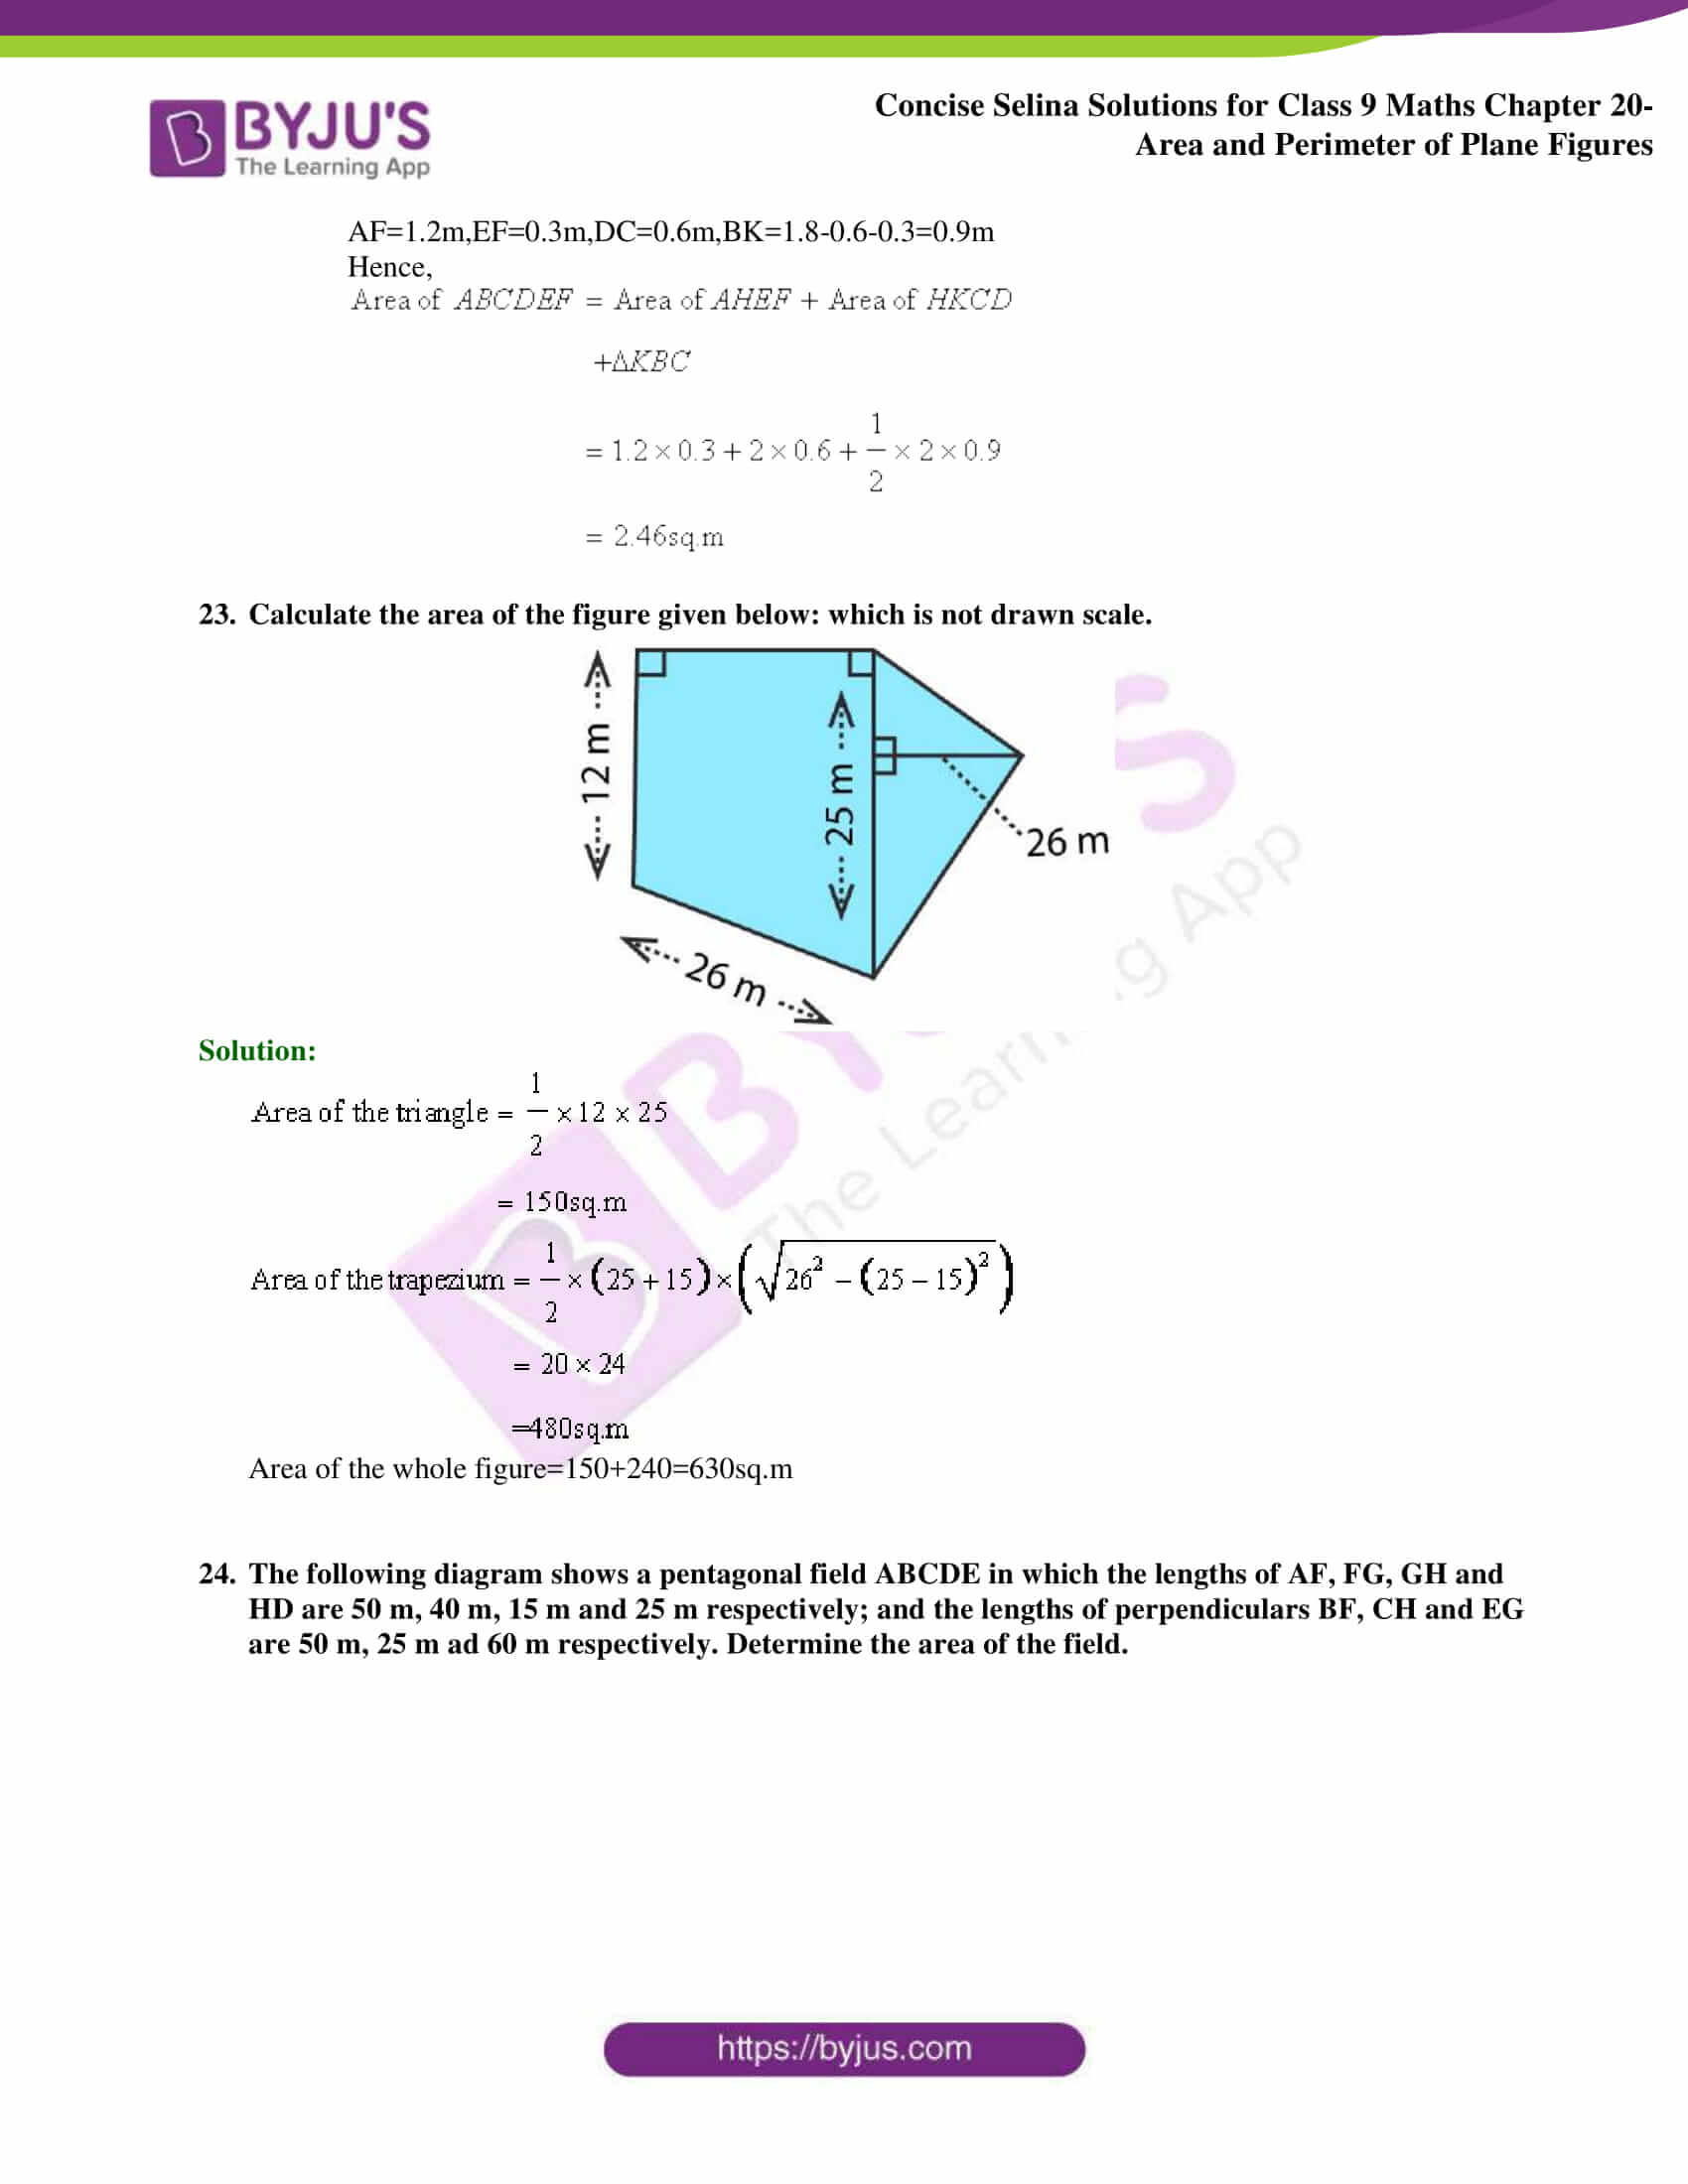 Concise Selina Solutions Class 9 Maths Chapter 20 Area and Perimeter of Plane part 22